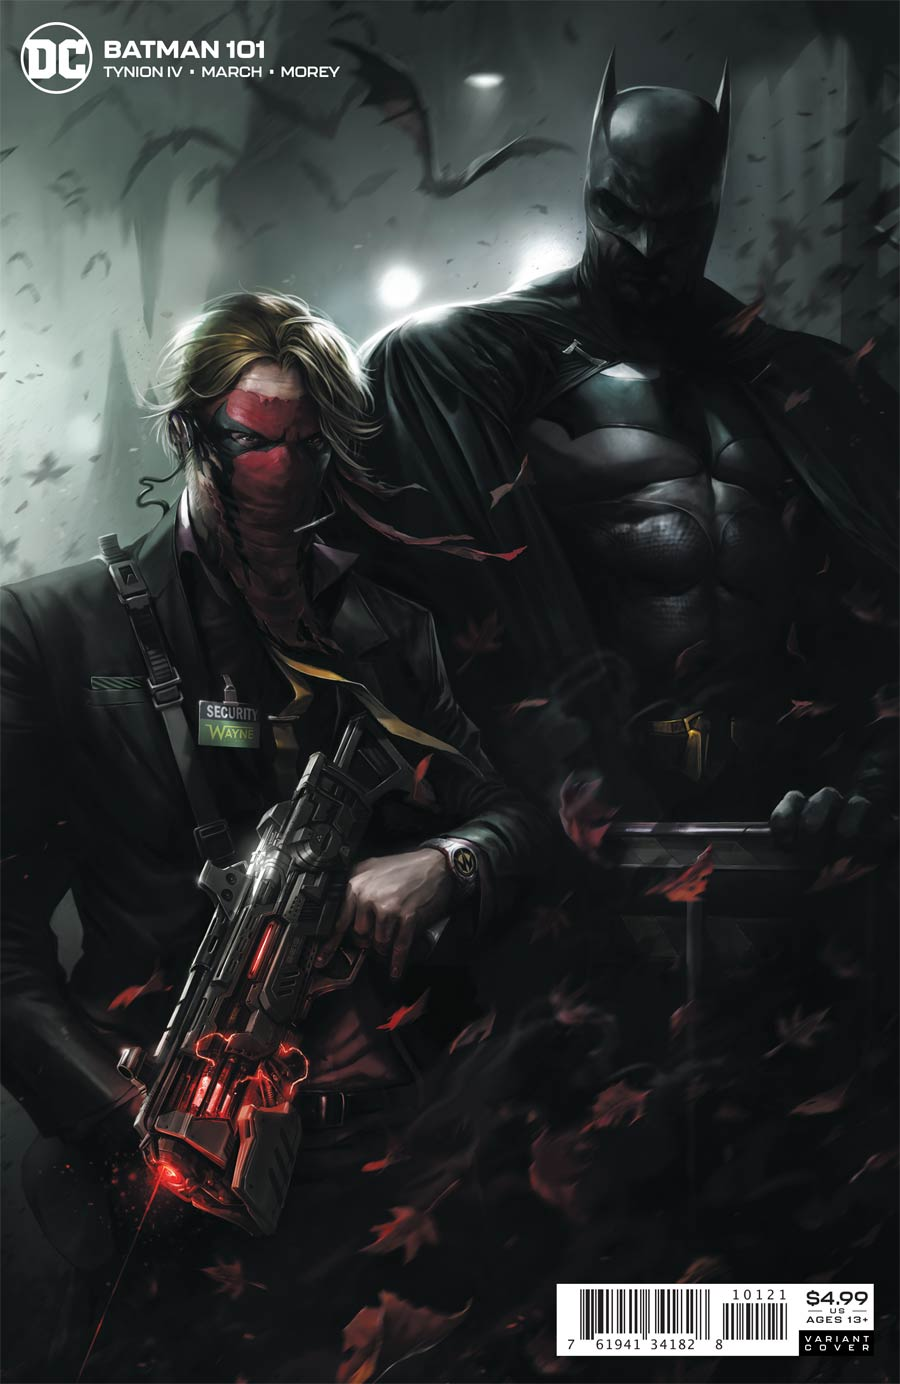 Batman Vol 3 #101 Cover B Variant Francesco Mattina Card Stock Cover (Joker War Aftermath Tie-In)